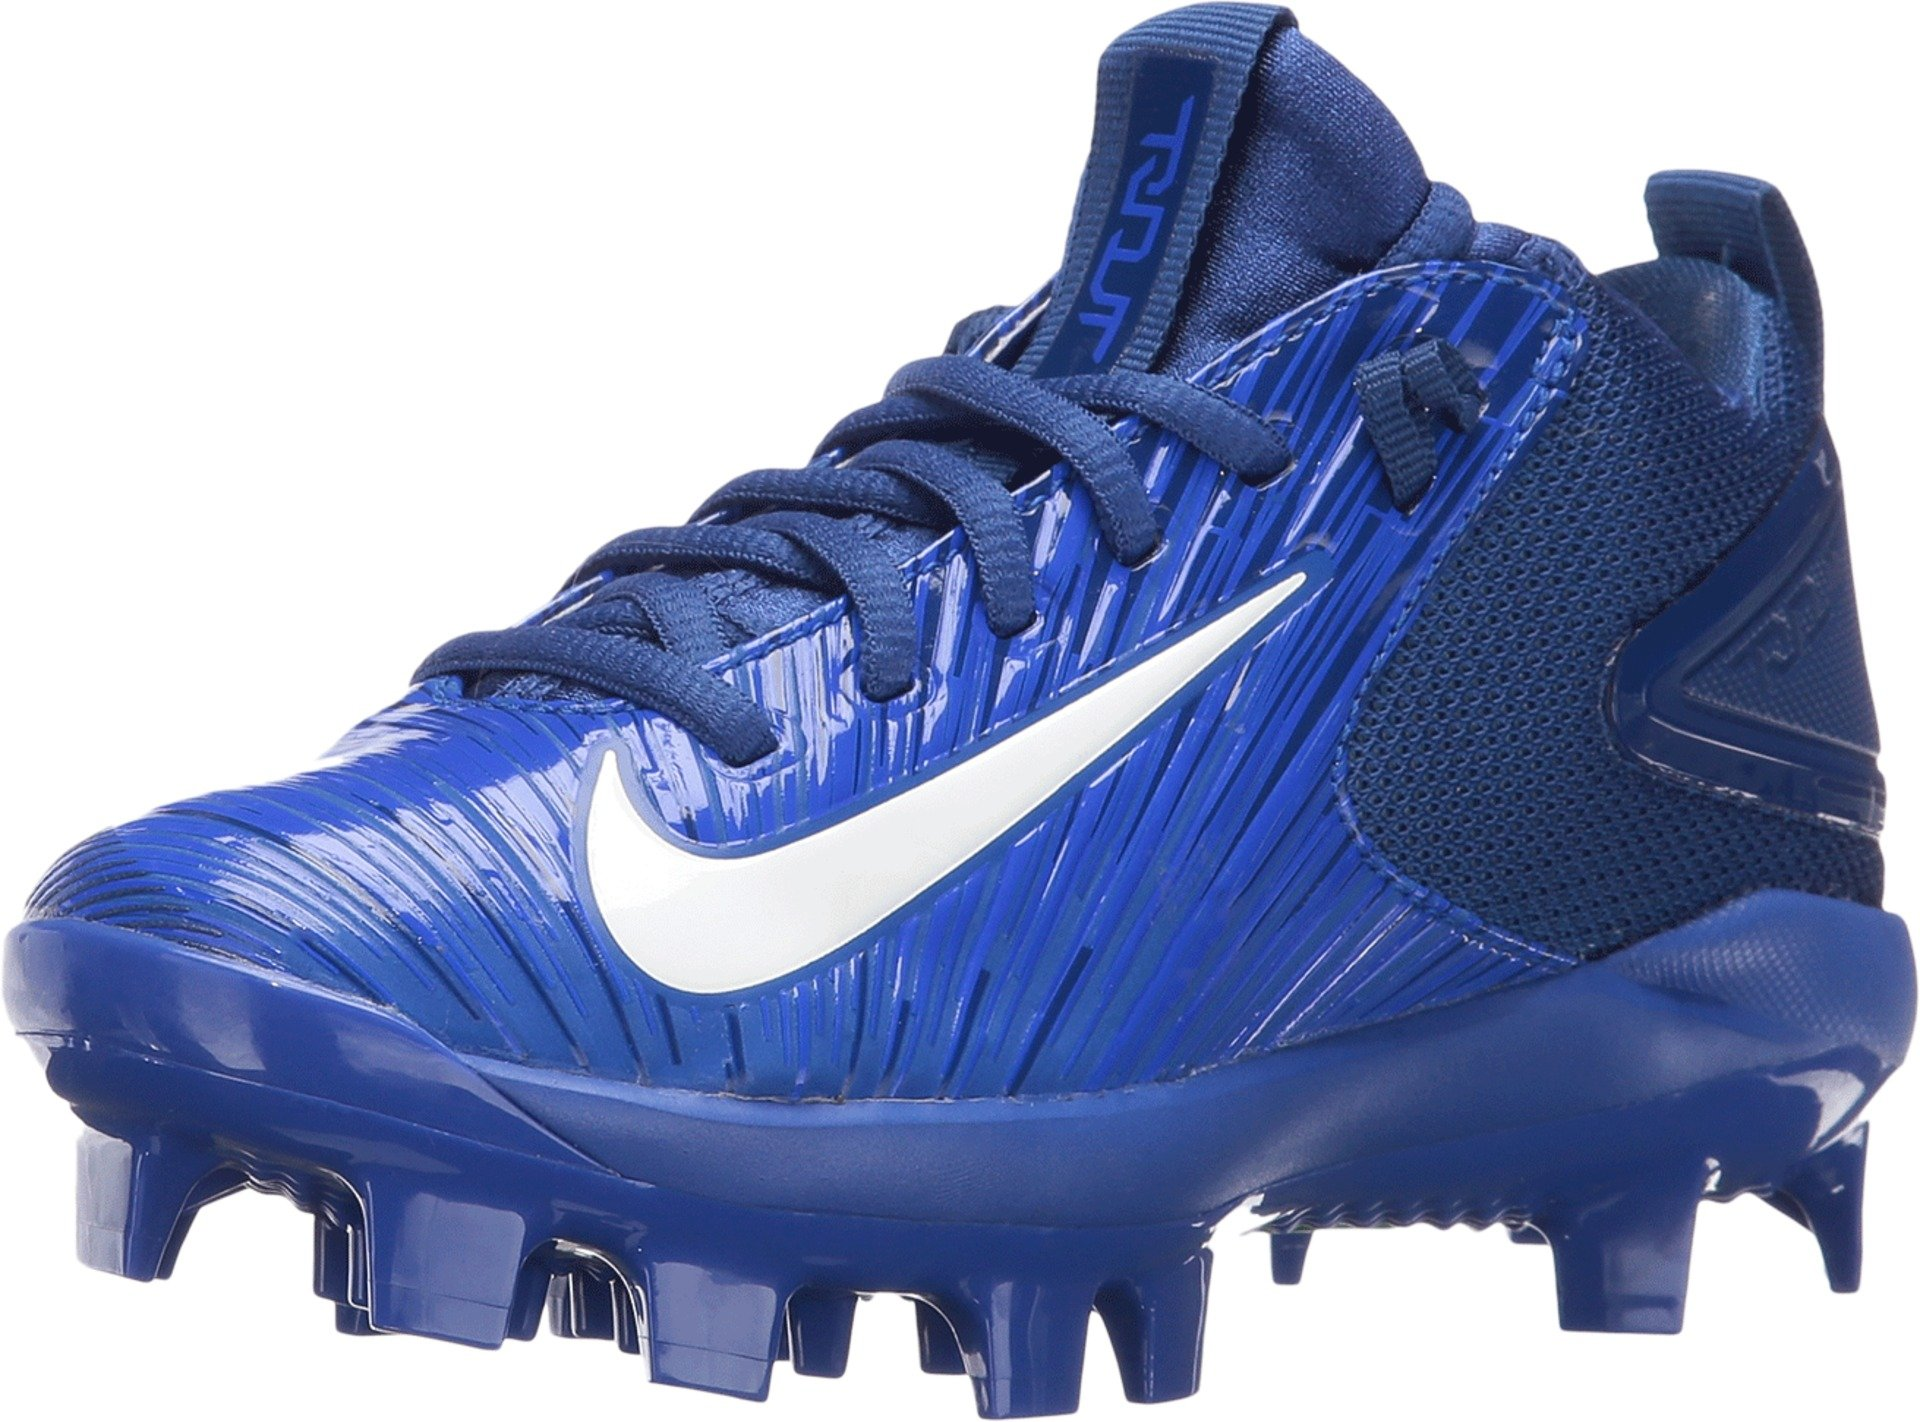 ee41bf3986ff Galleon - Nike Kids' Force Trout 3 Pro Mid Baseball Cleats (1, Blue/White)